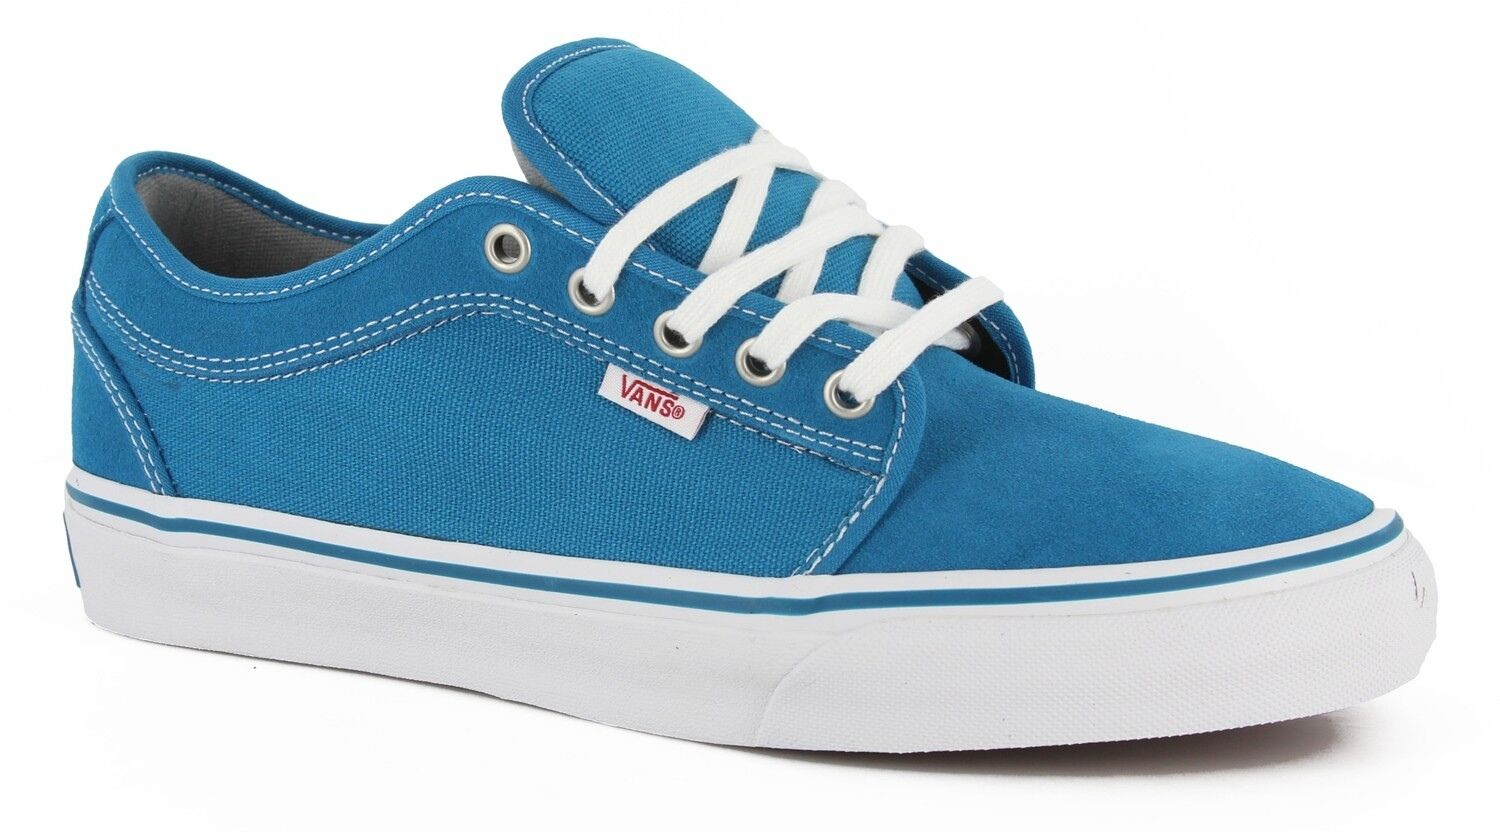 NEW VANS CHUKKA LOW LAGOON blueE SZ SIZE WOMENS 8.5 25 CM SHOES MENS 7 NIB AQUA